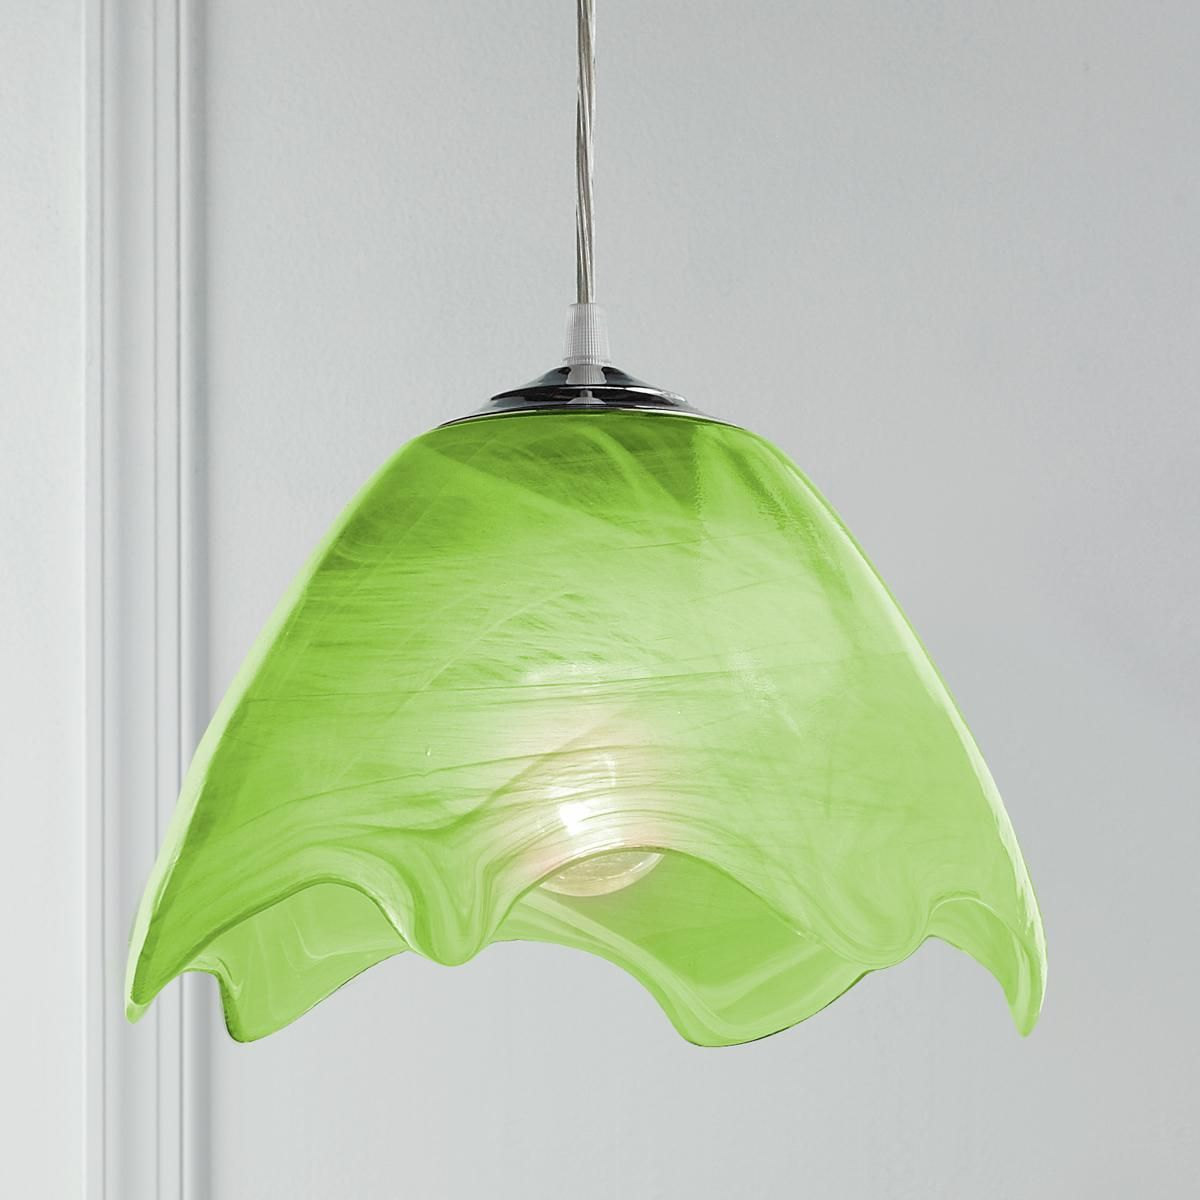 Green Glass Pendant Light Wavy Glass Pendant Light Glass Pendants Pendant